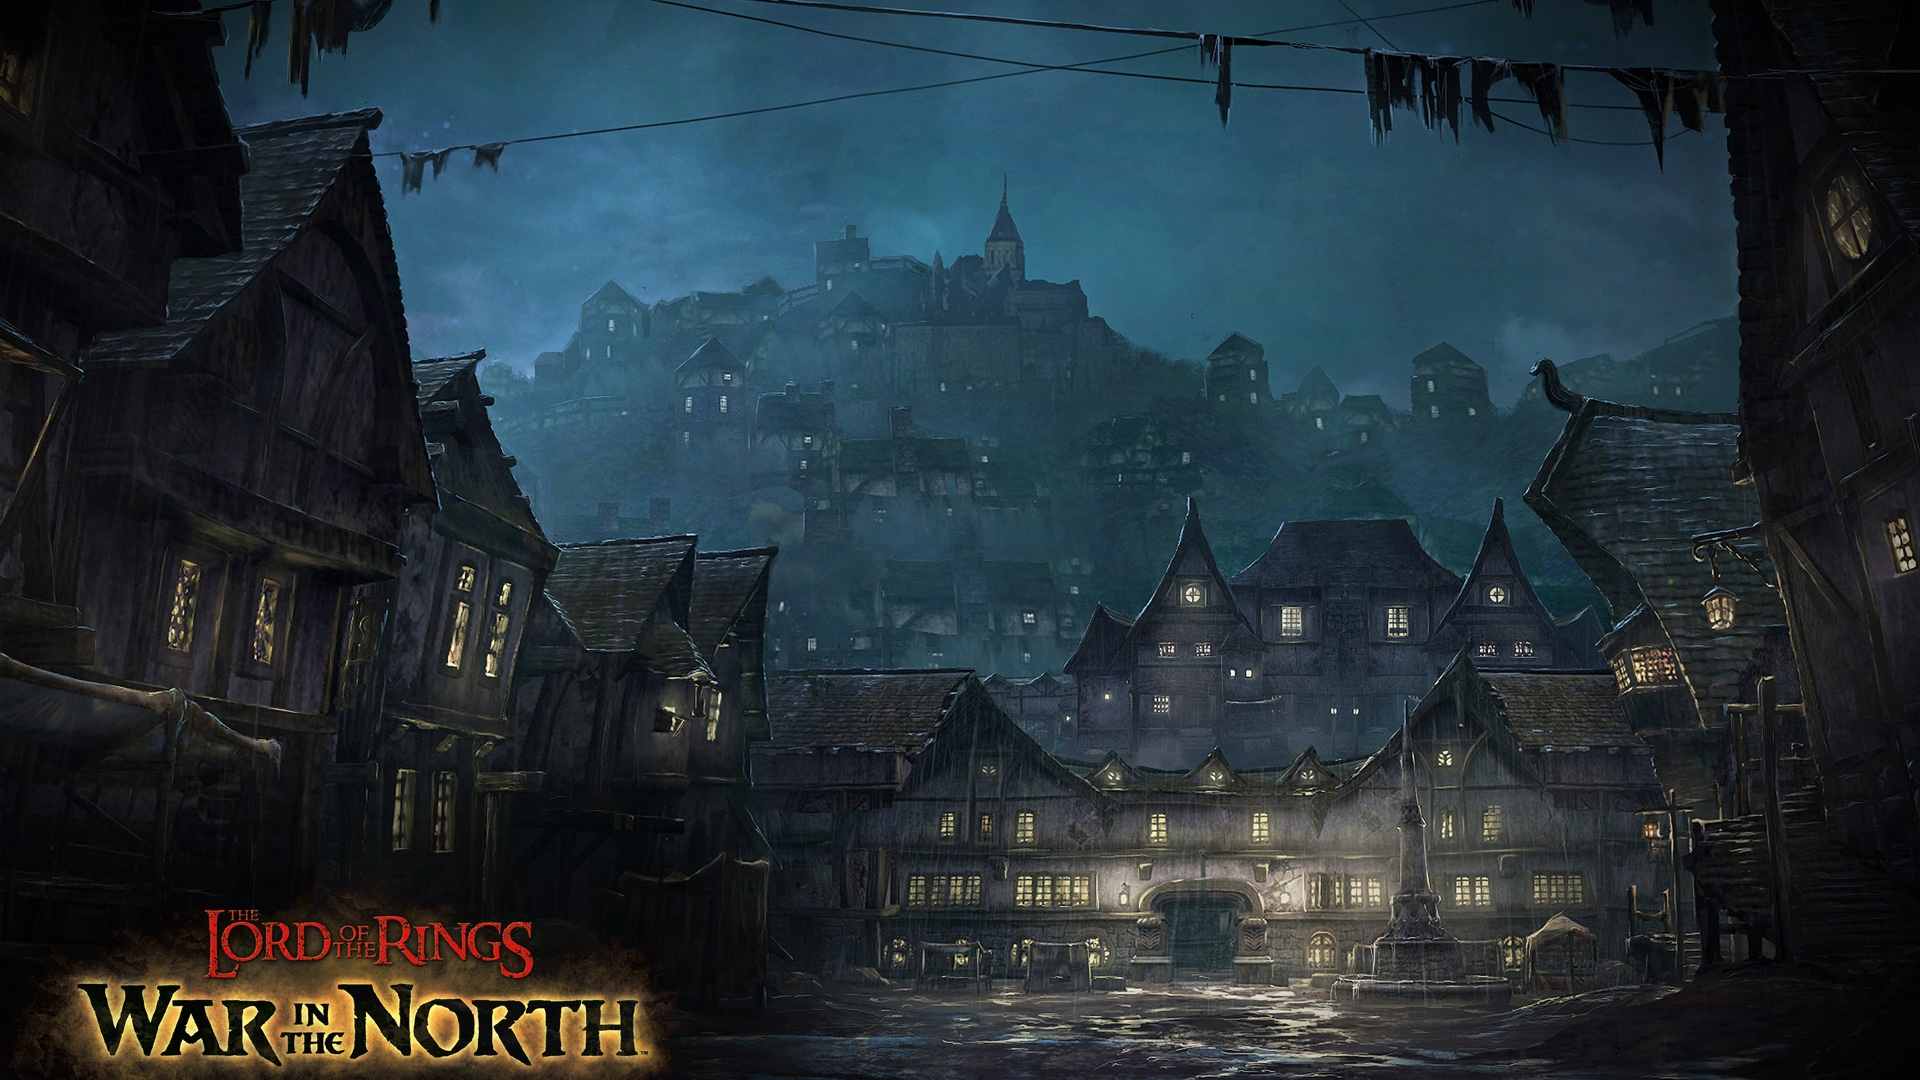 in the north wallpapers hd high definition hd games wallpaper 1920x1080